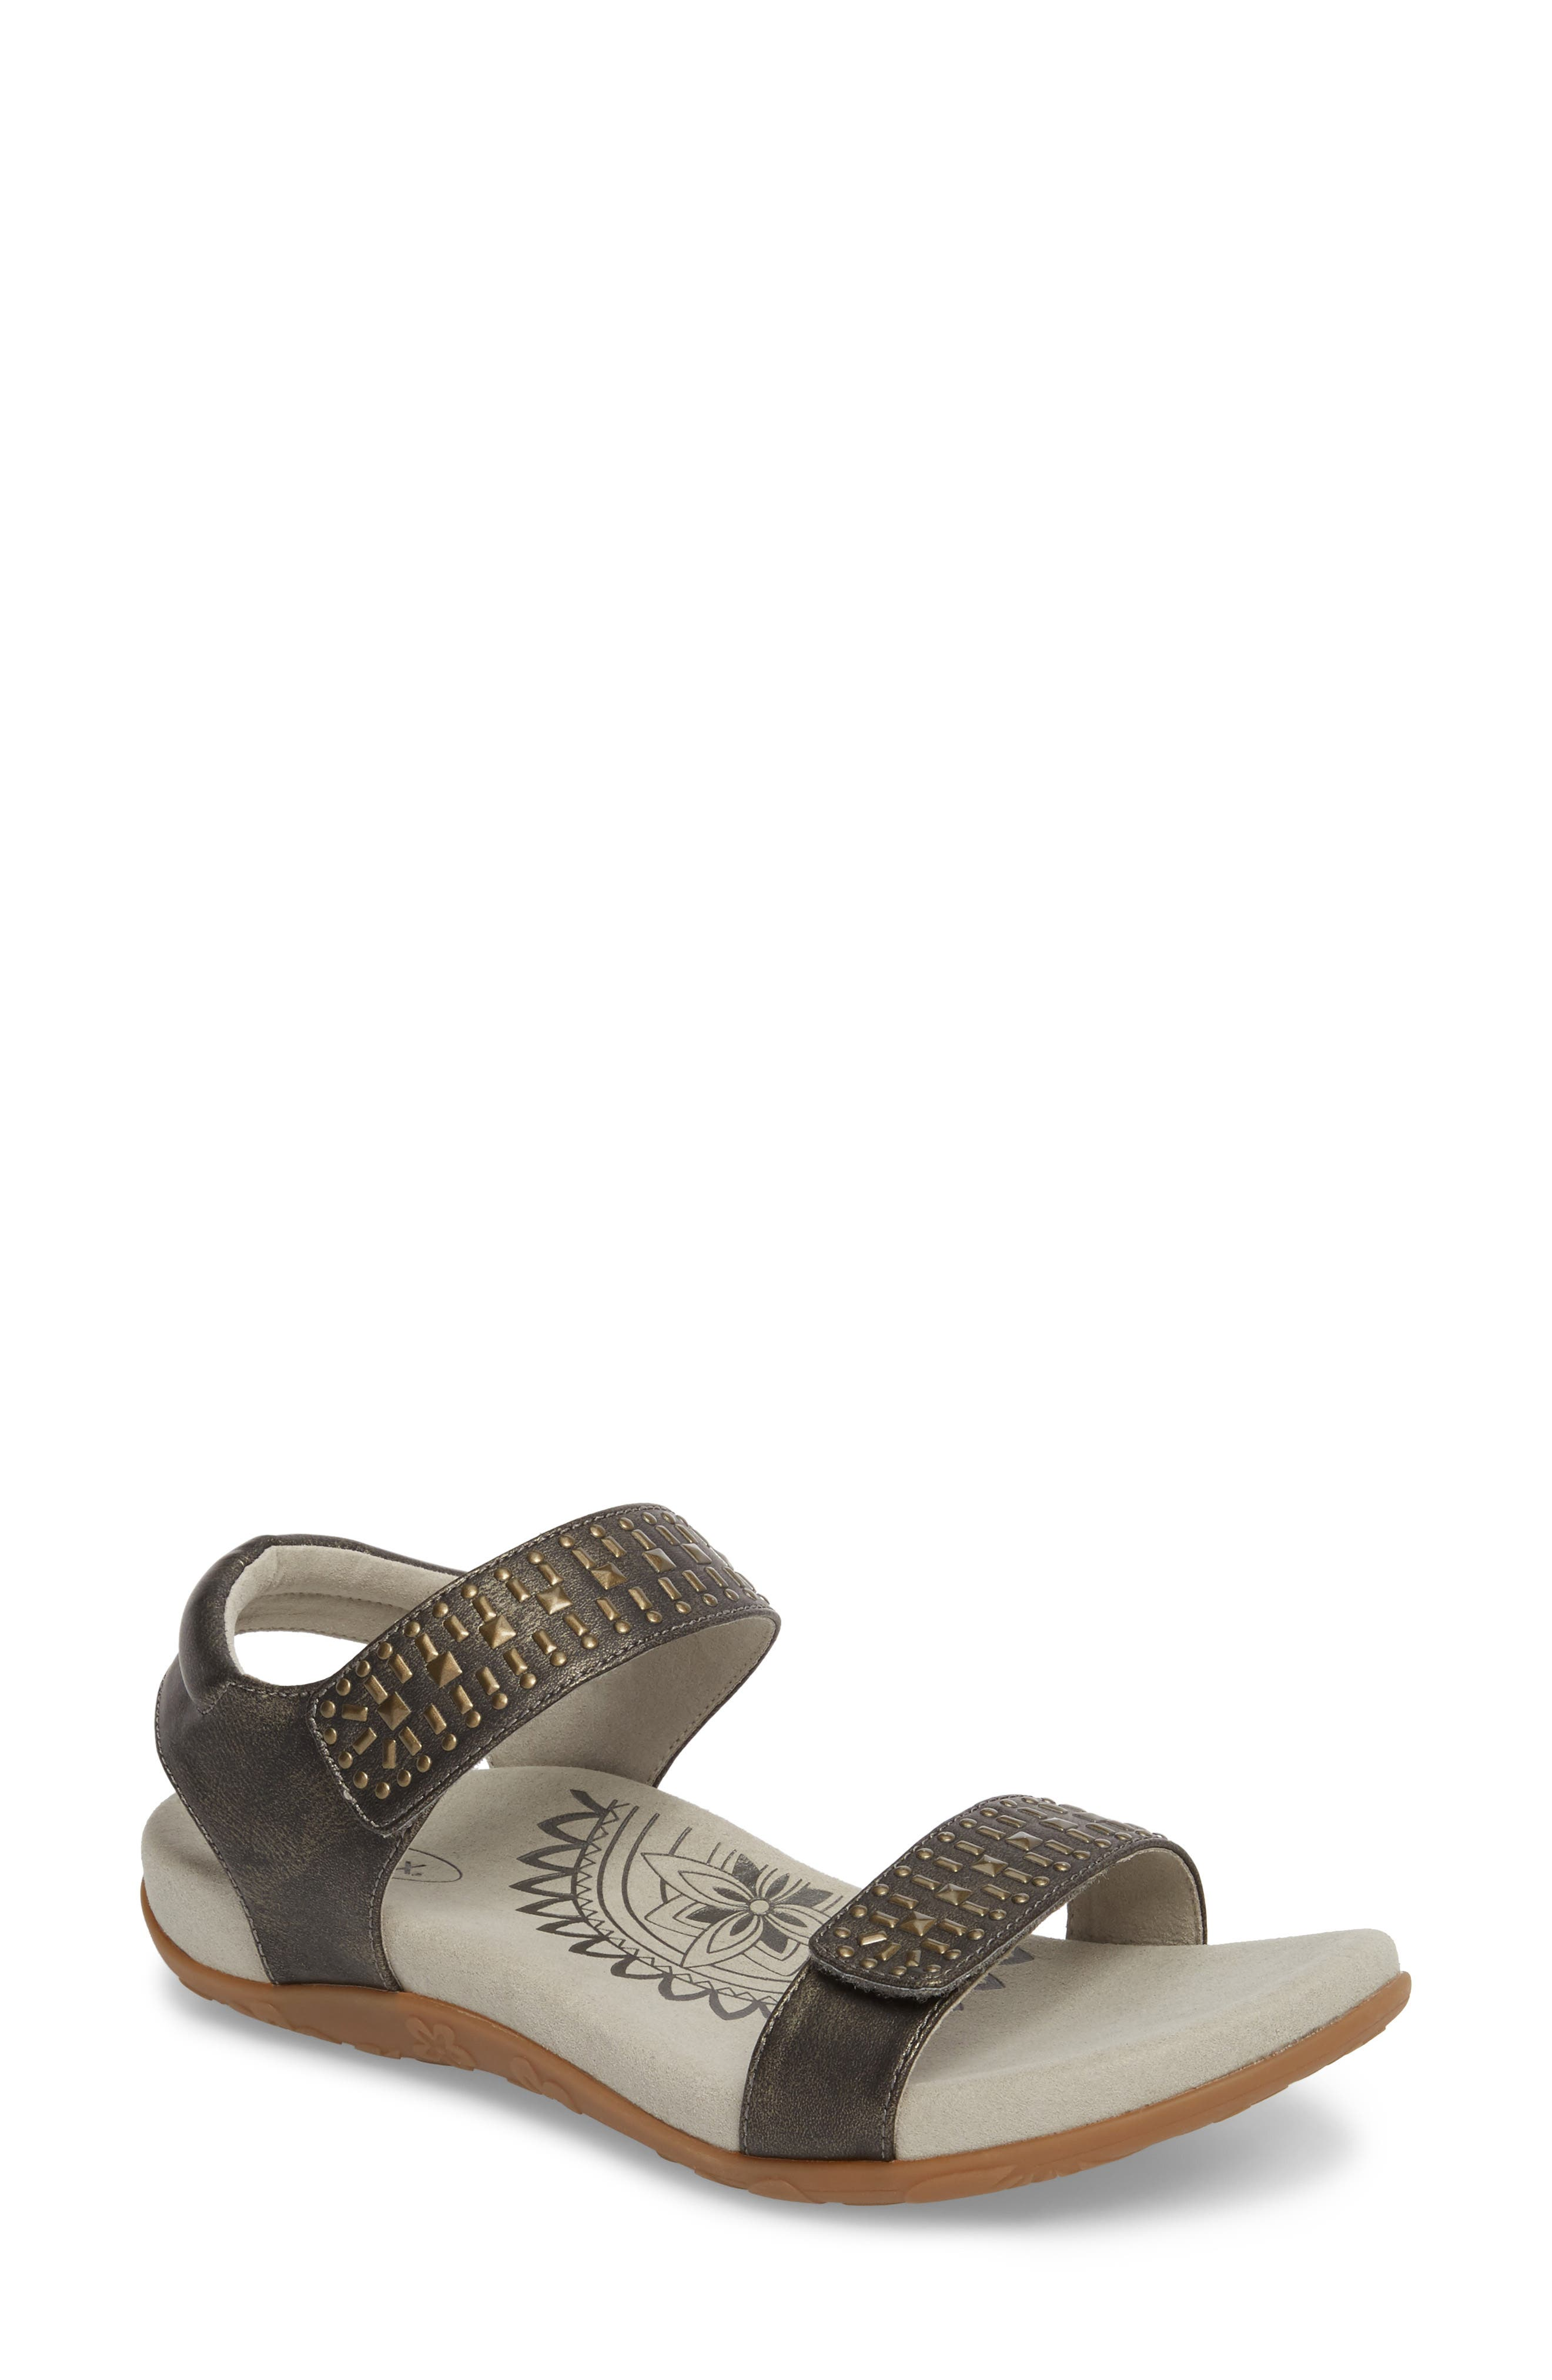 'Maria' Sandal,                         Main,                         color, Pewter Leather